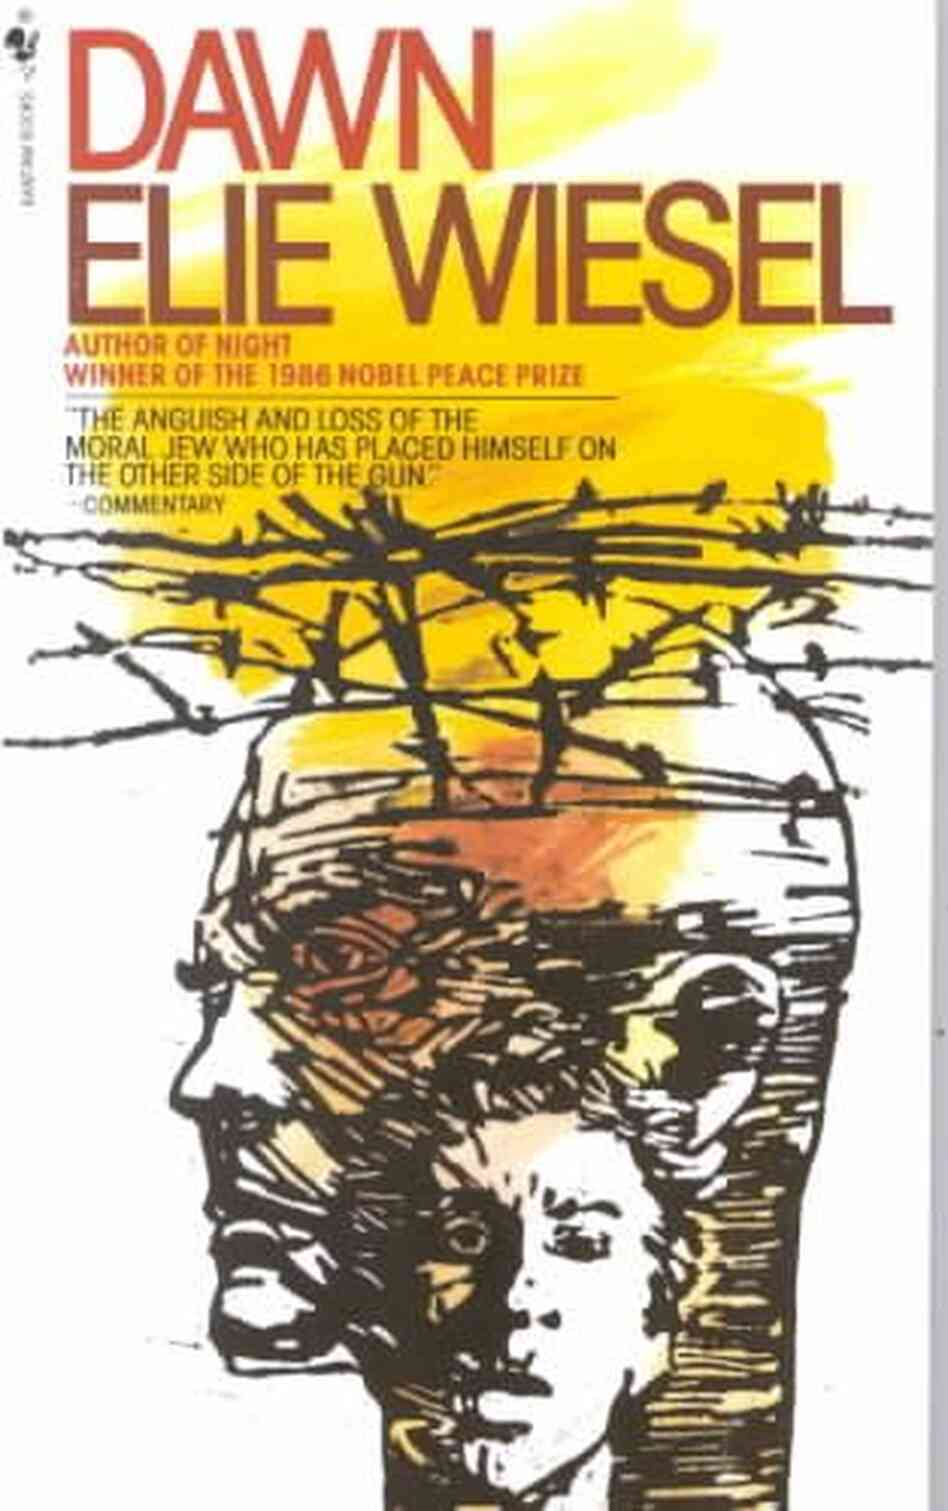 dawn by elie wiesel essay Dawn is a novel by elie wiesel, published in 1961 it is the second in a trilogy— night, dawn, and day—describing wiesel's experiences or thoughts during and.